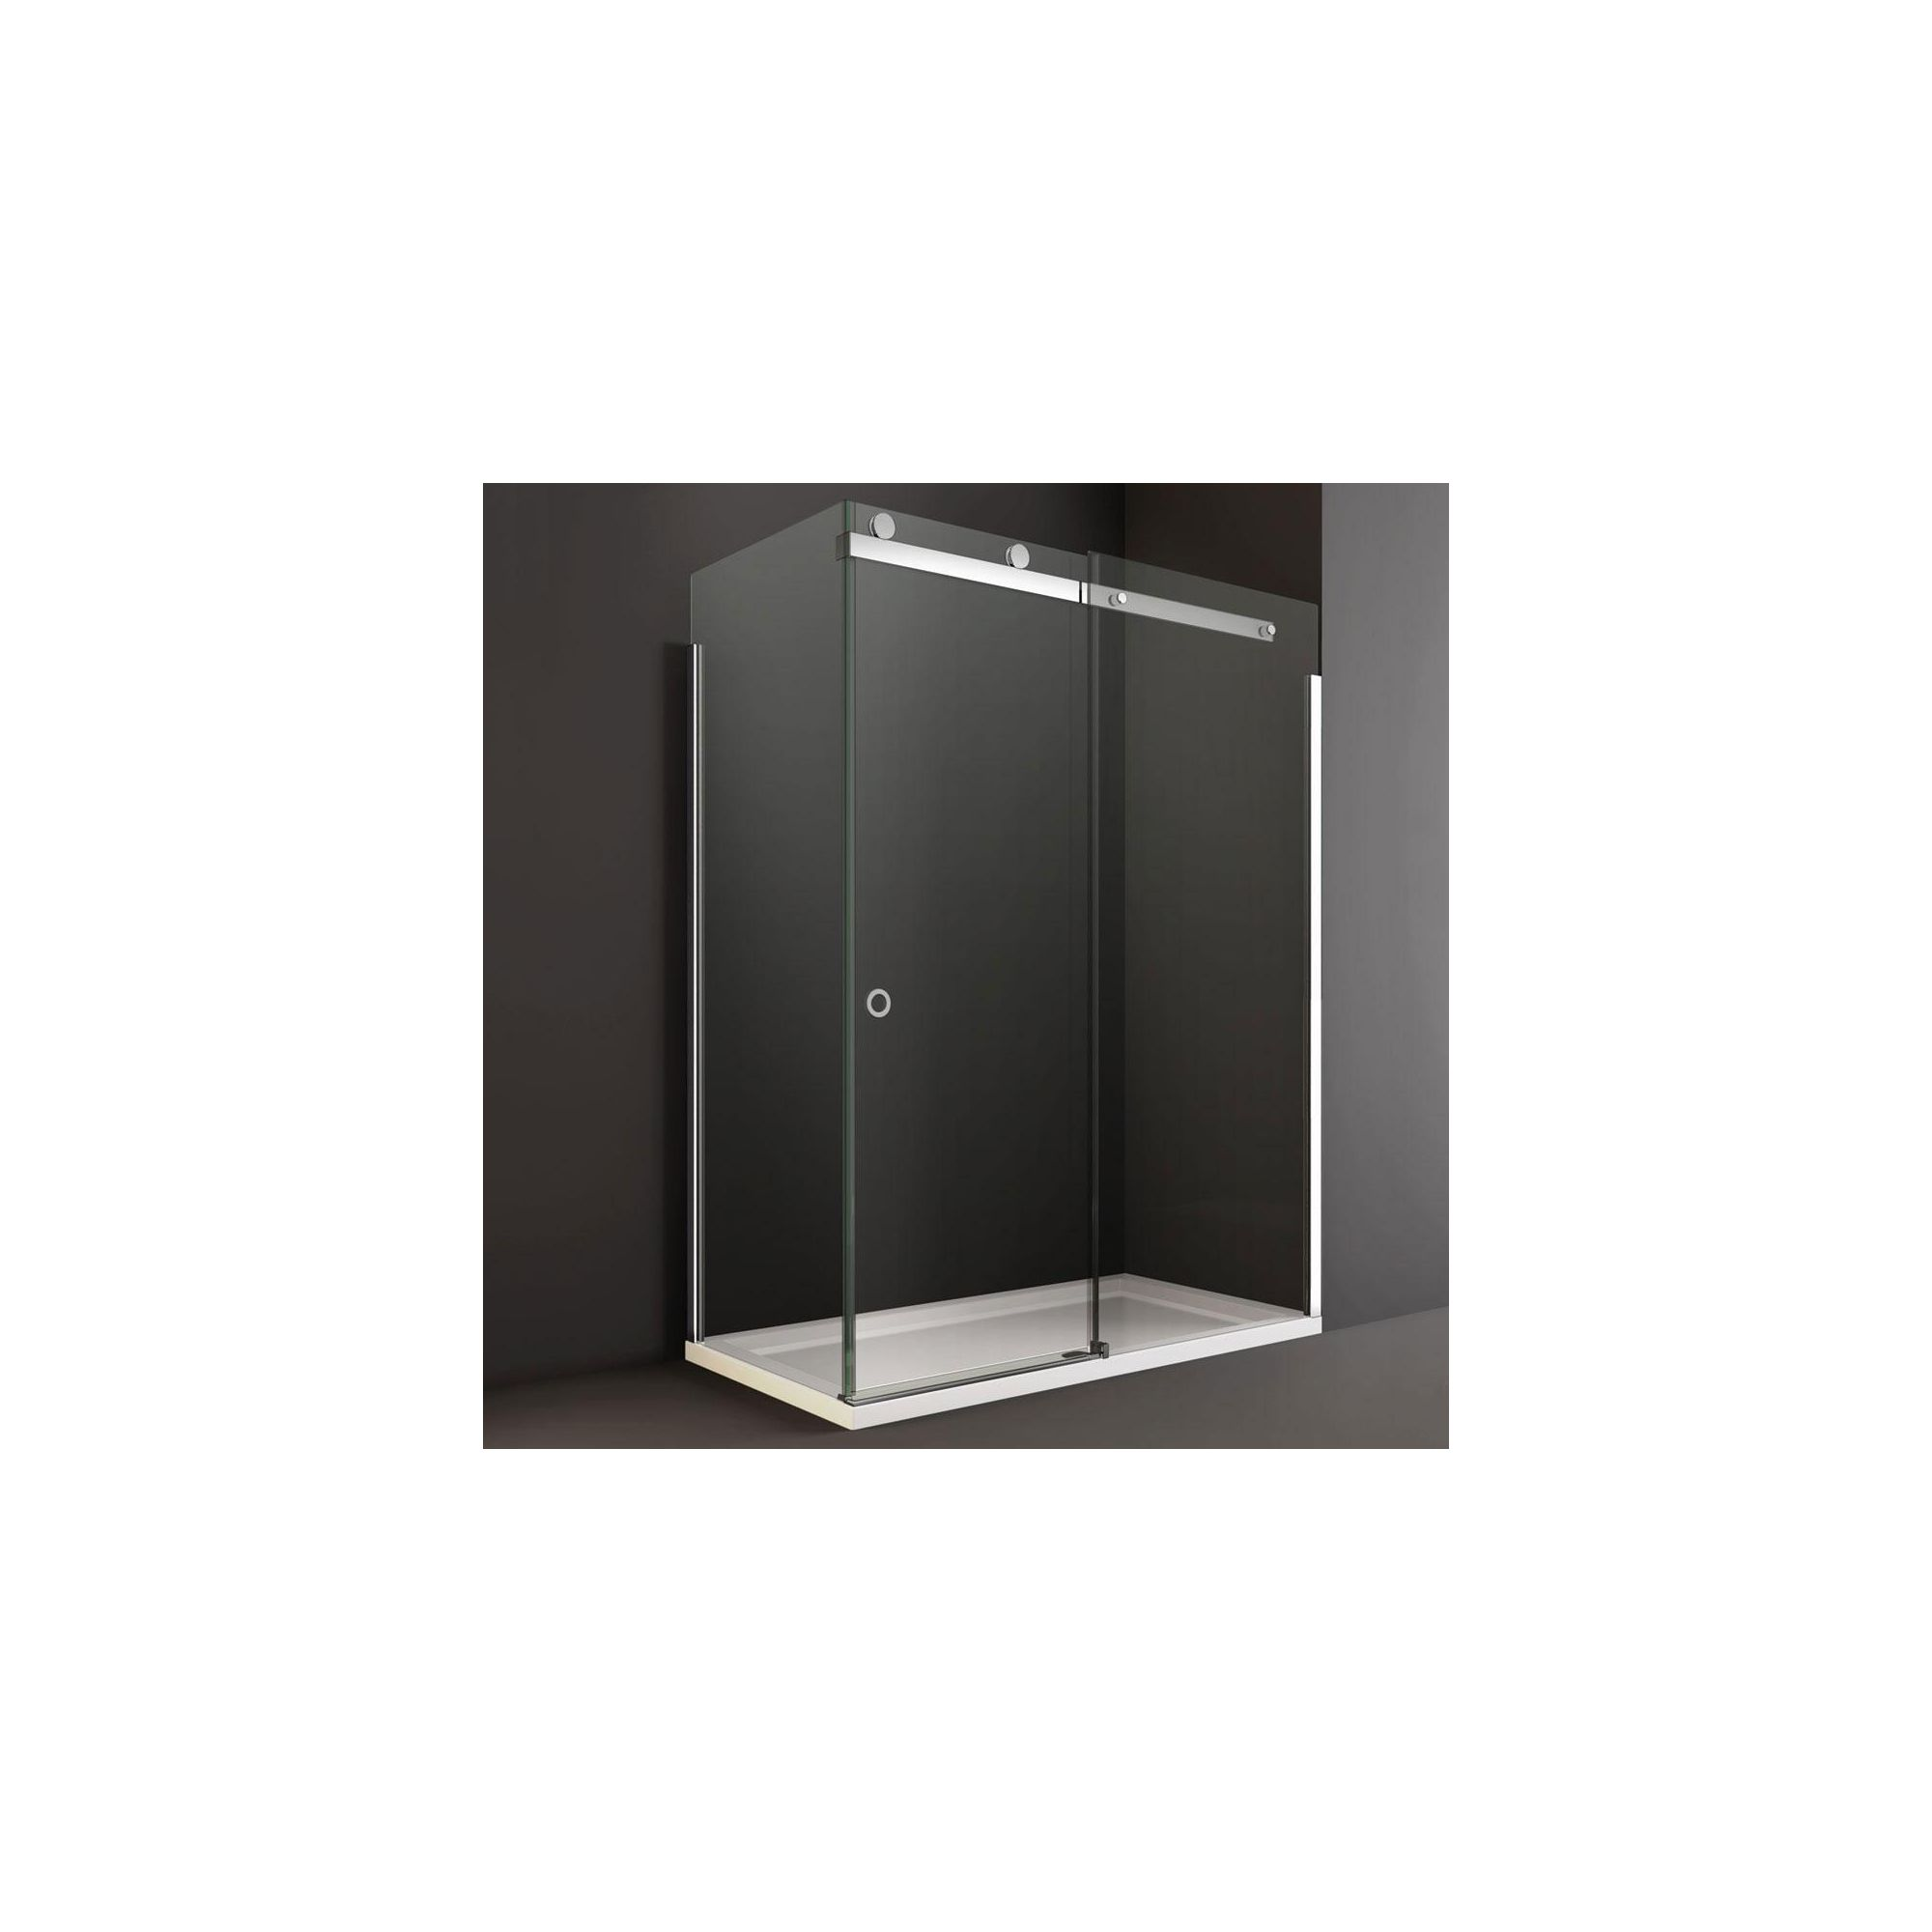 Merlyn Series 10 Sliding Shower Door, 1200mm Wide, 10mm Clear Glass, Right Handed at Tescos Direct